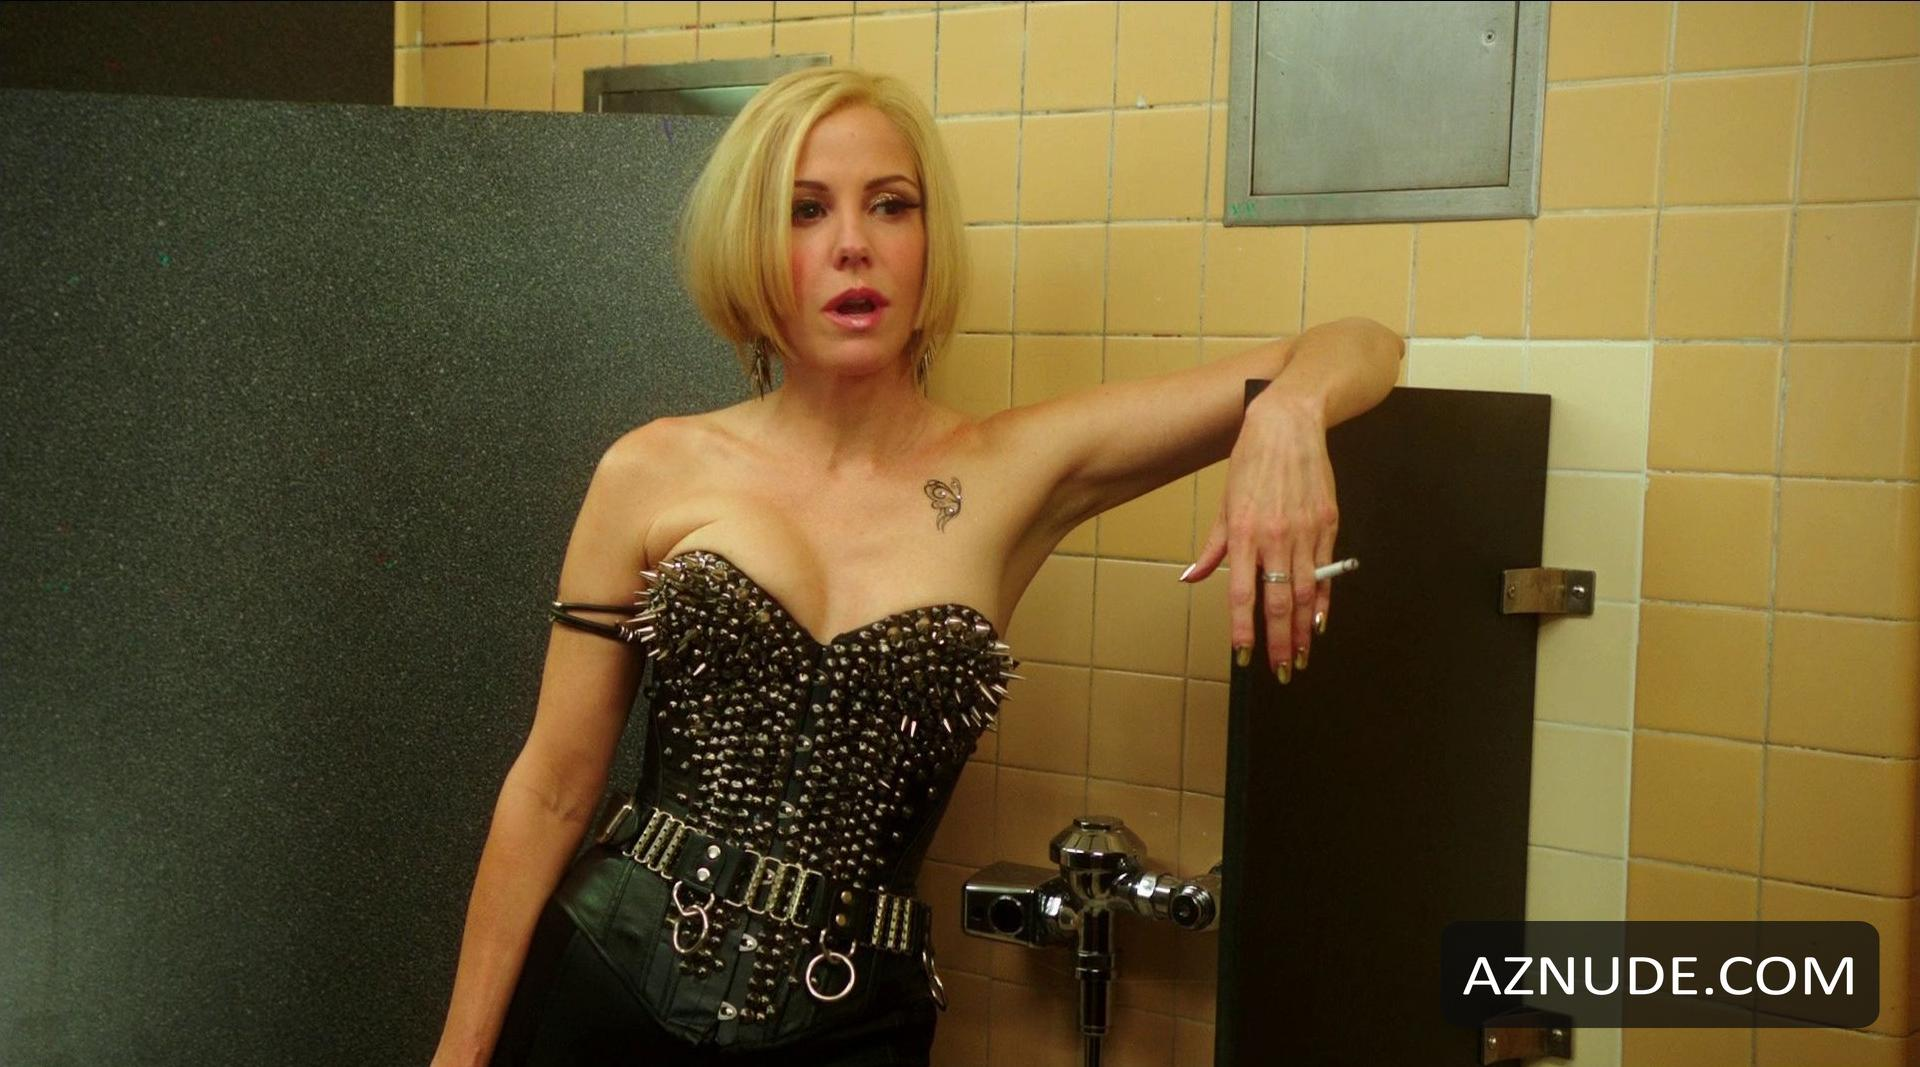 Marylouise parker behaving badly 6